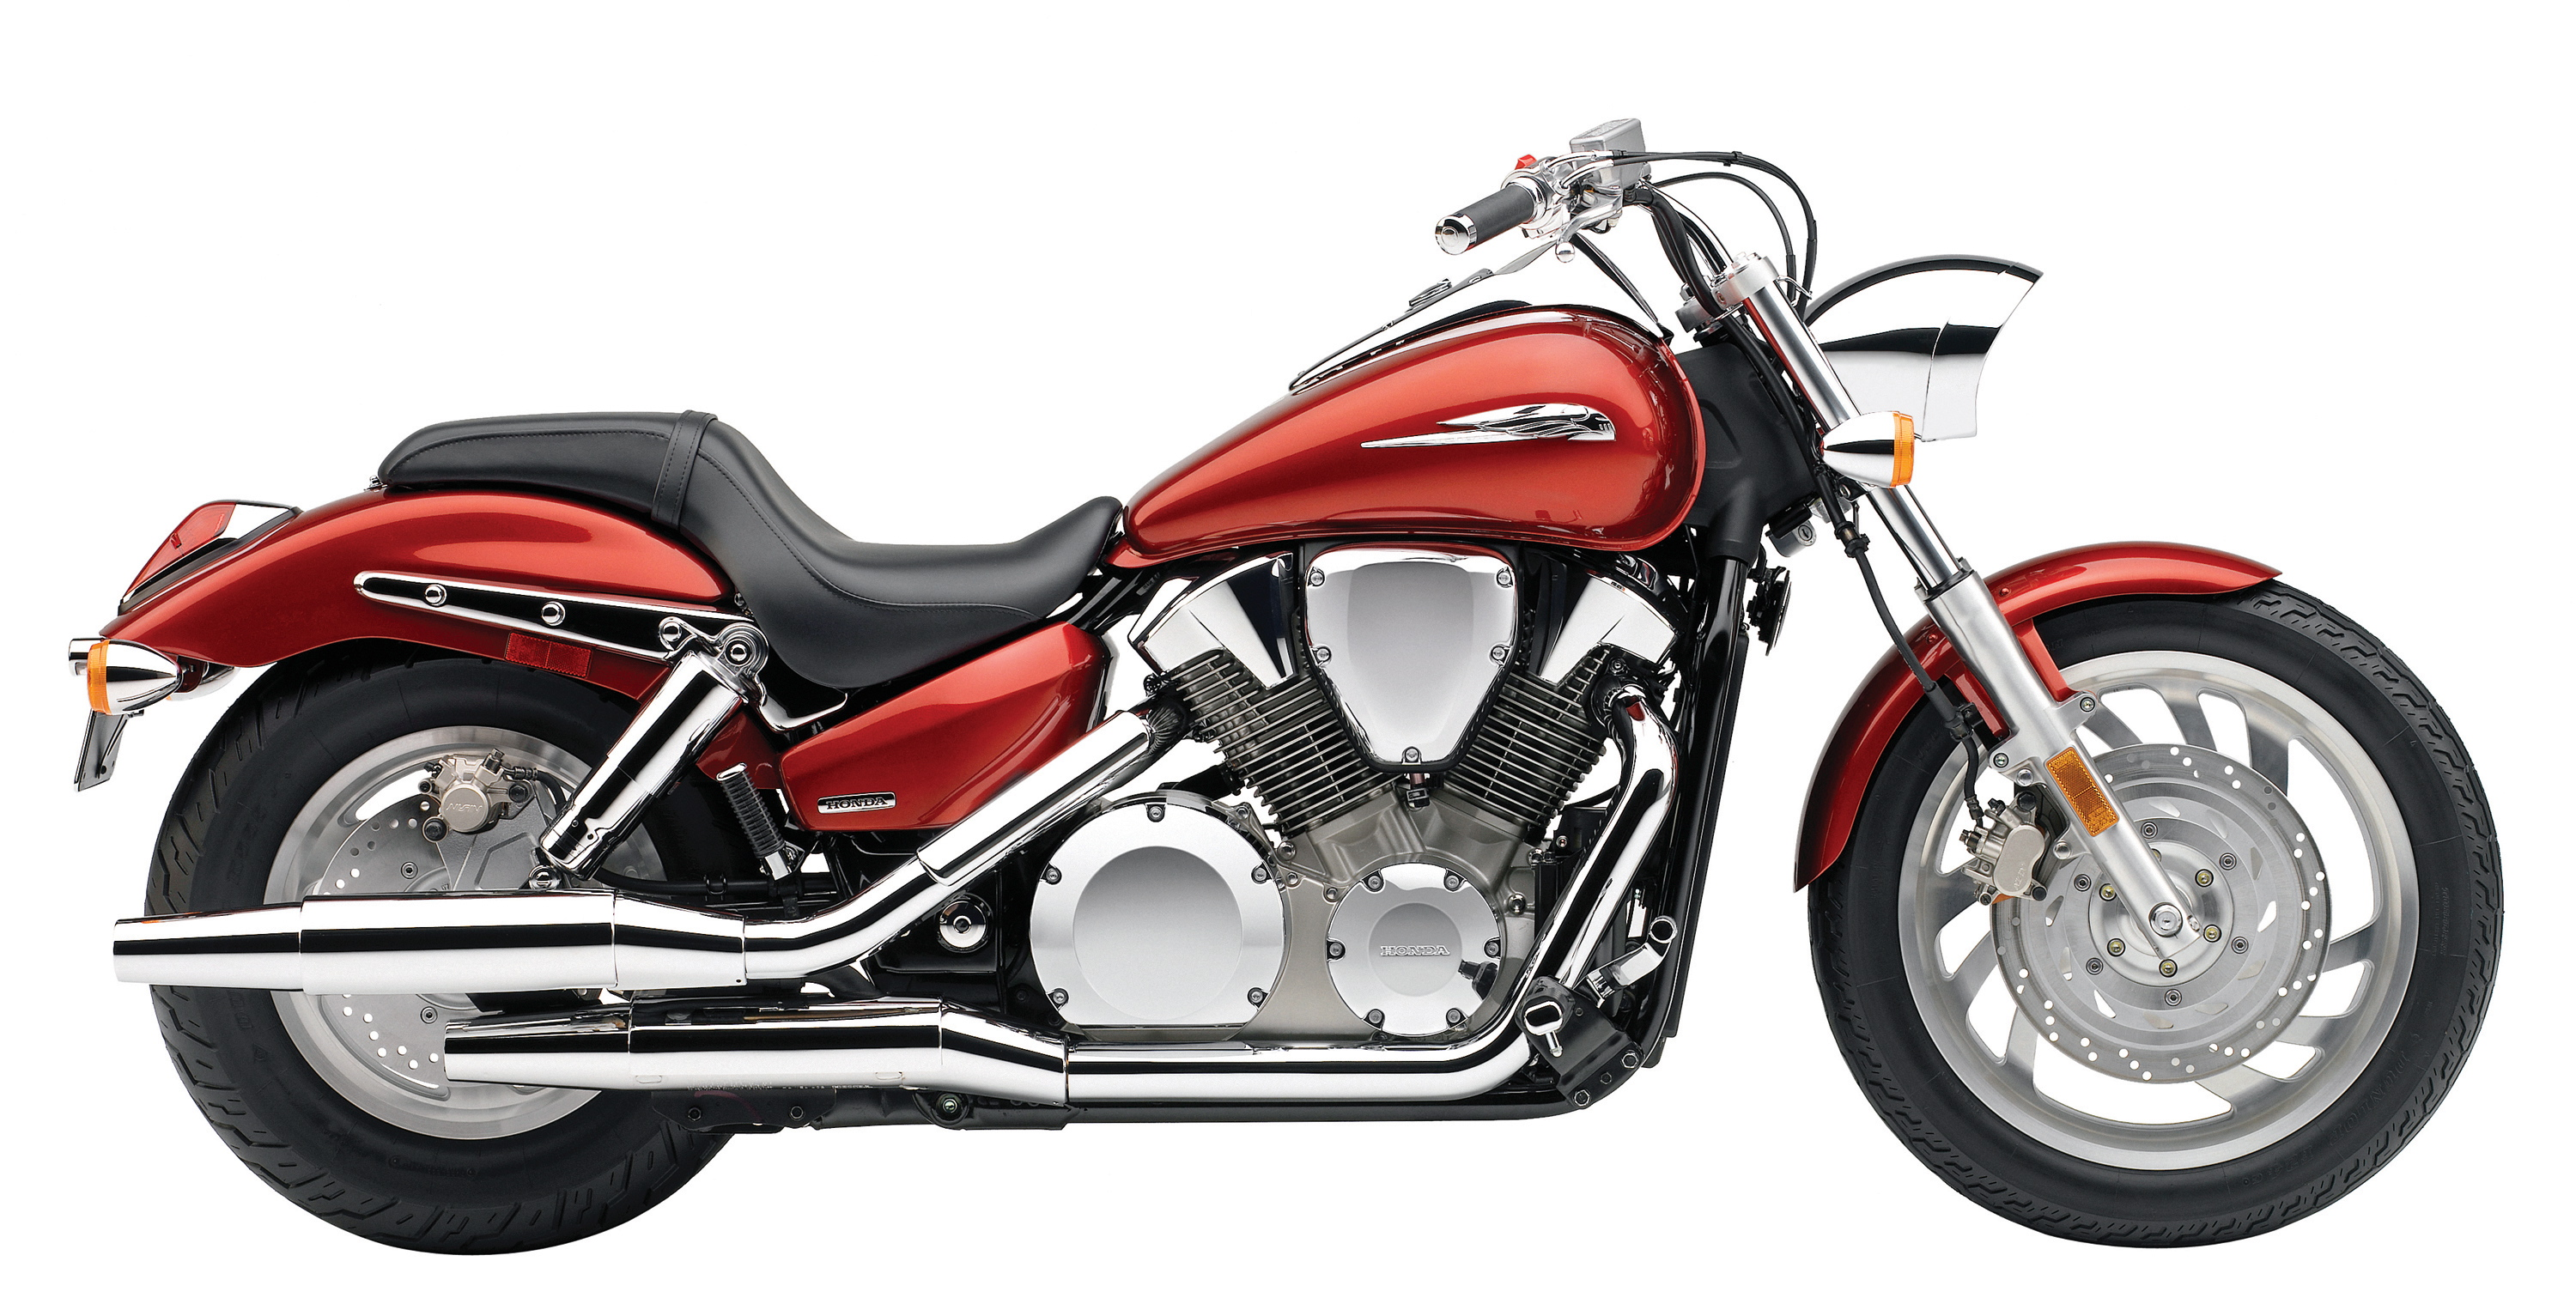 2009 Honda VTX1300 | Top Speed. »